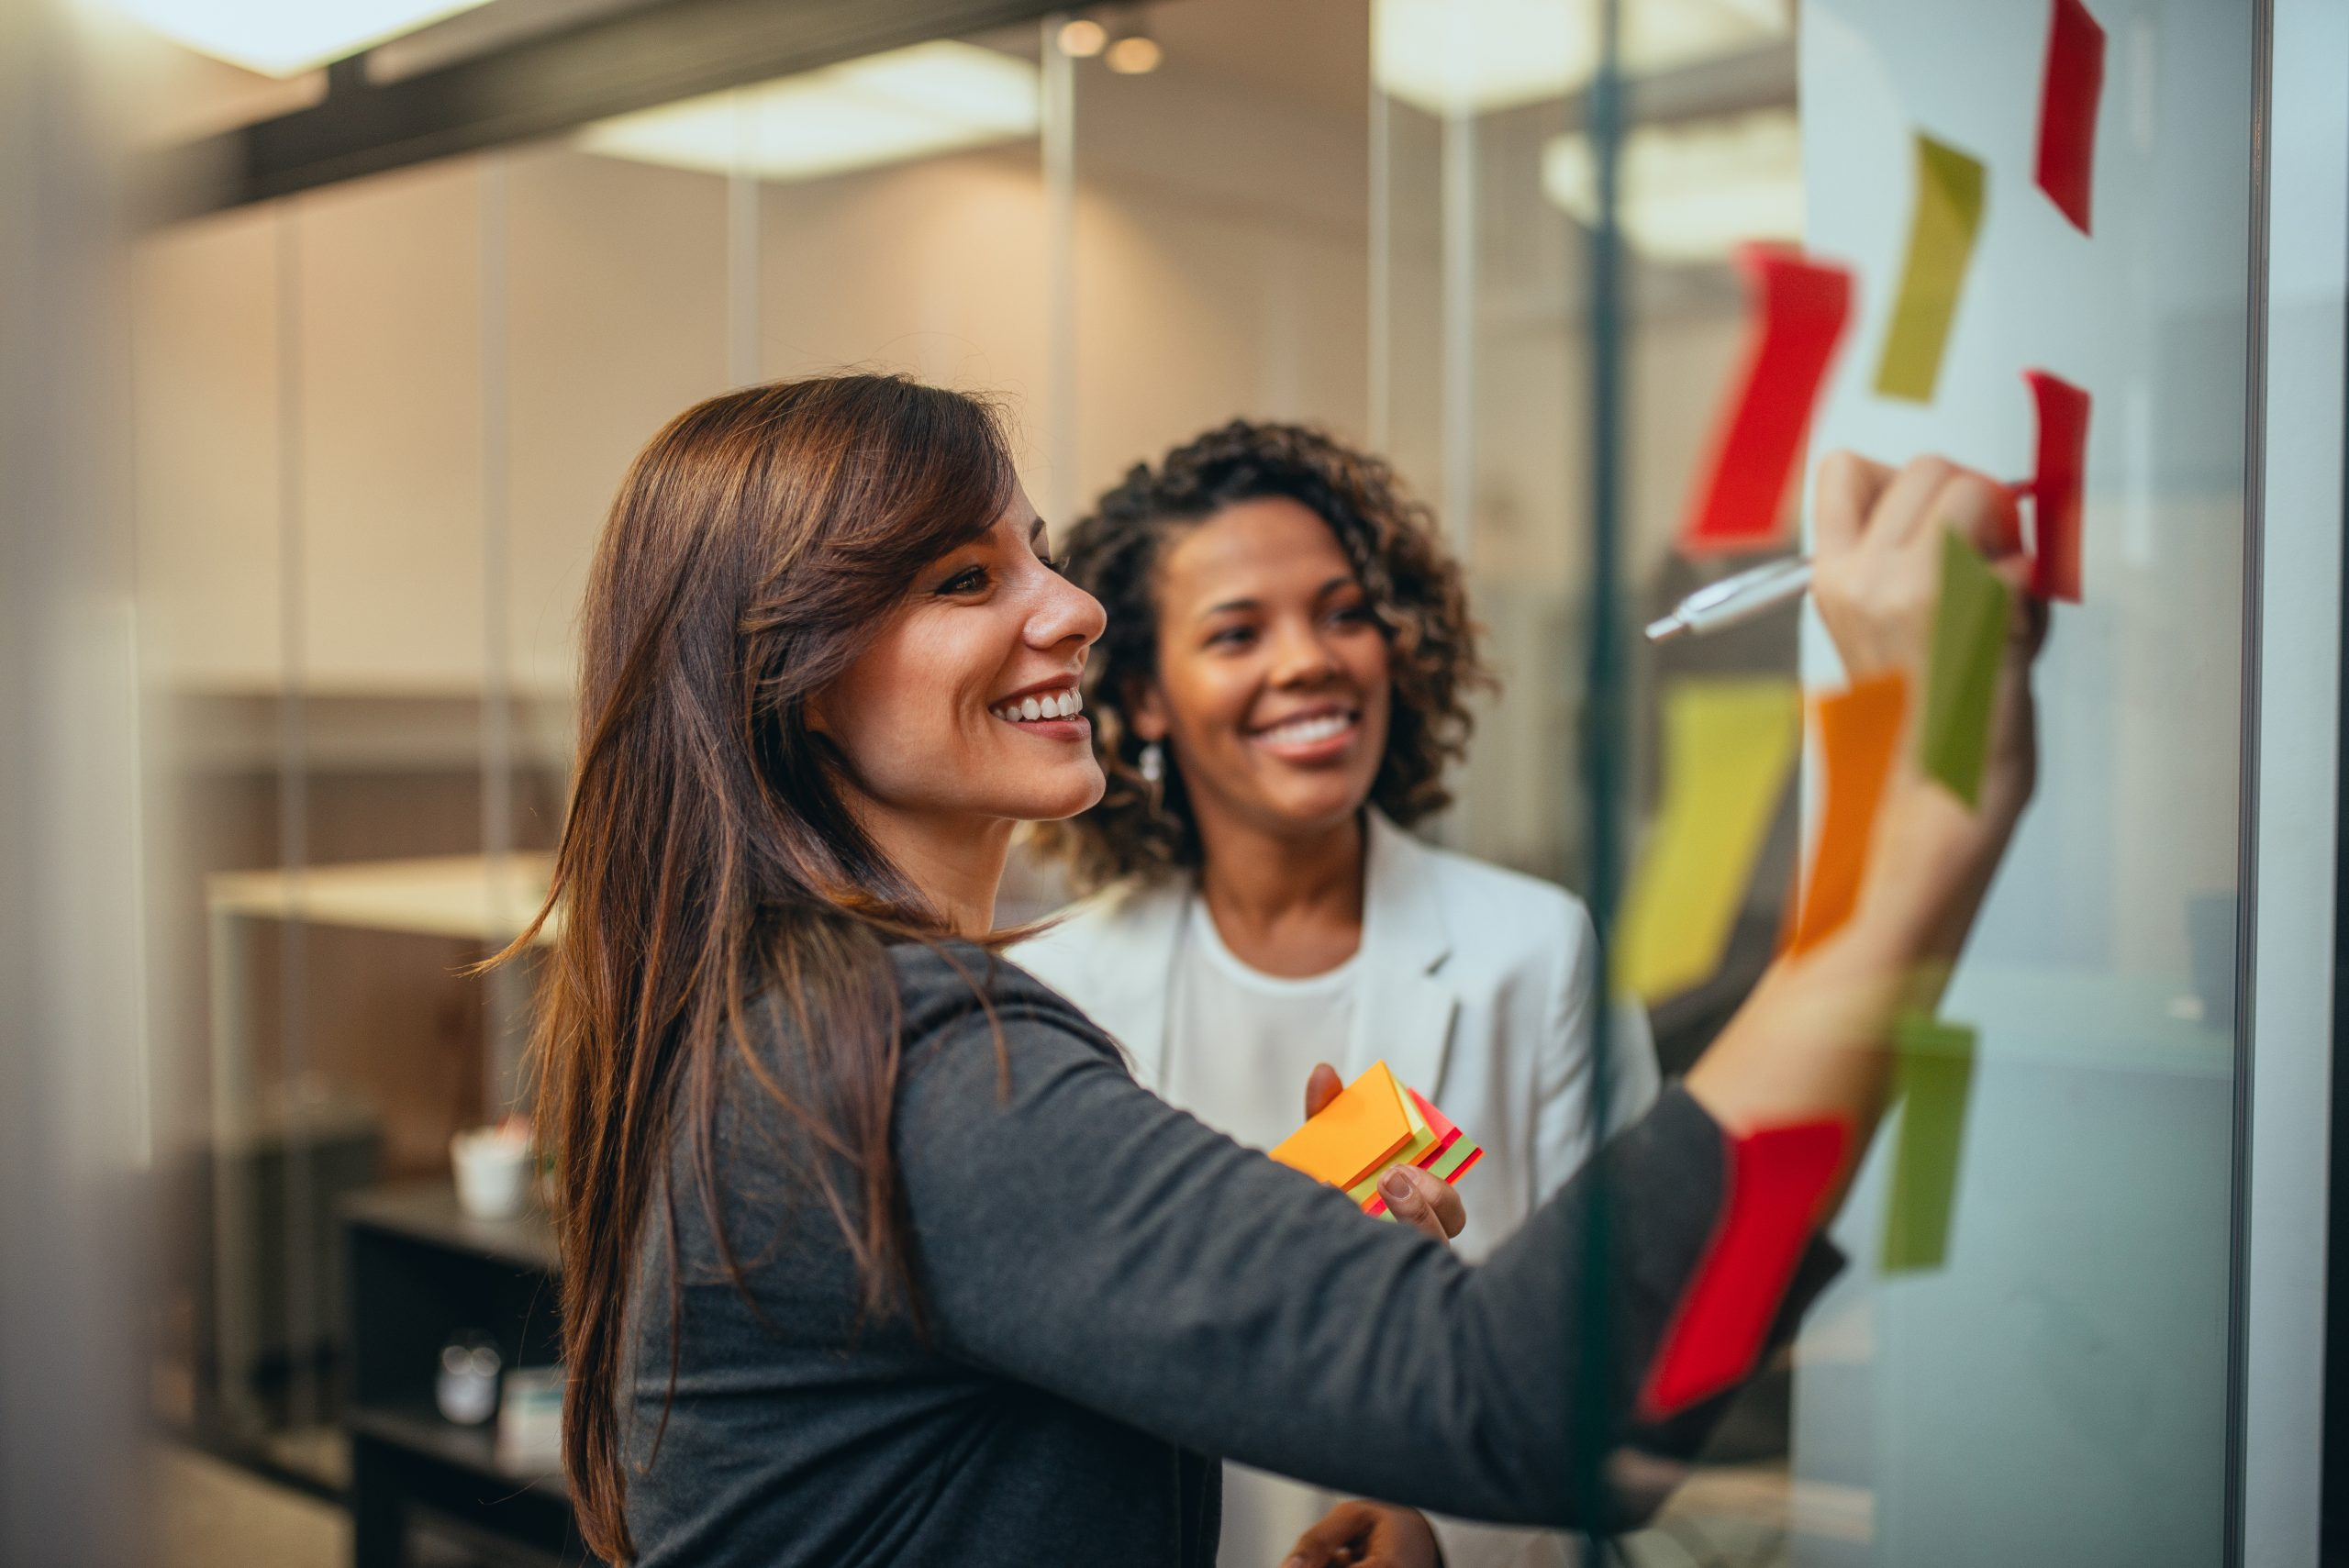 Smiling businesswoman brainstorming with adhesive notes on a glass wall in the office, portrait.